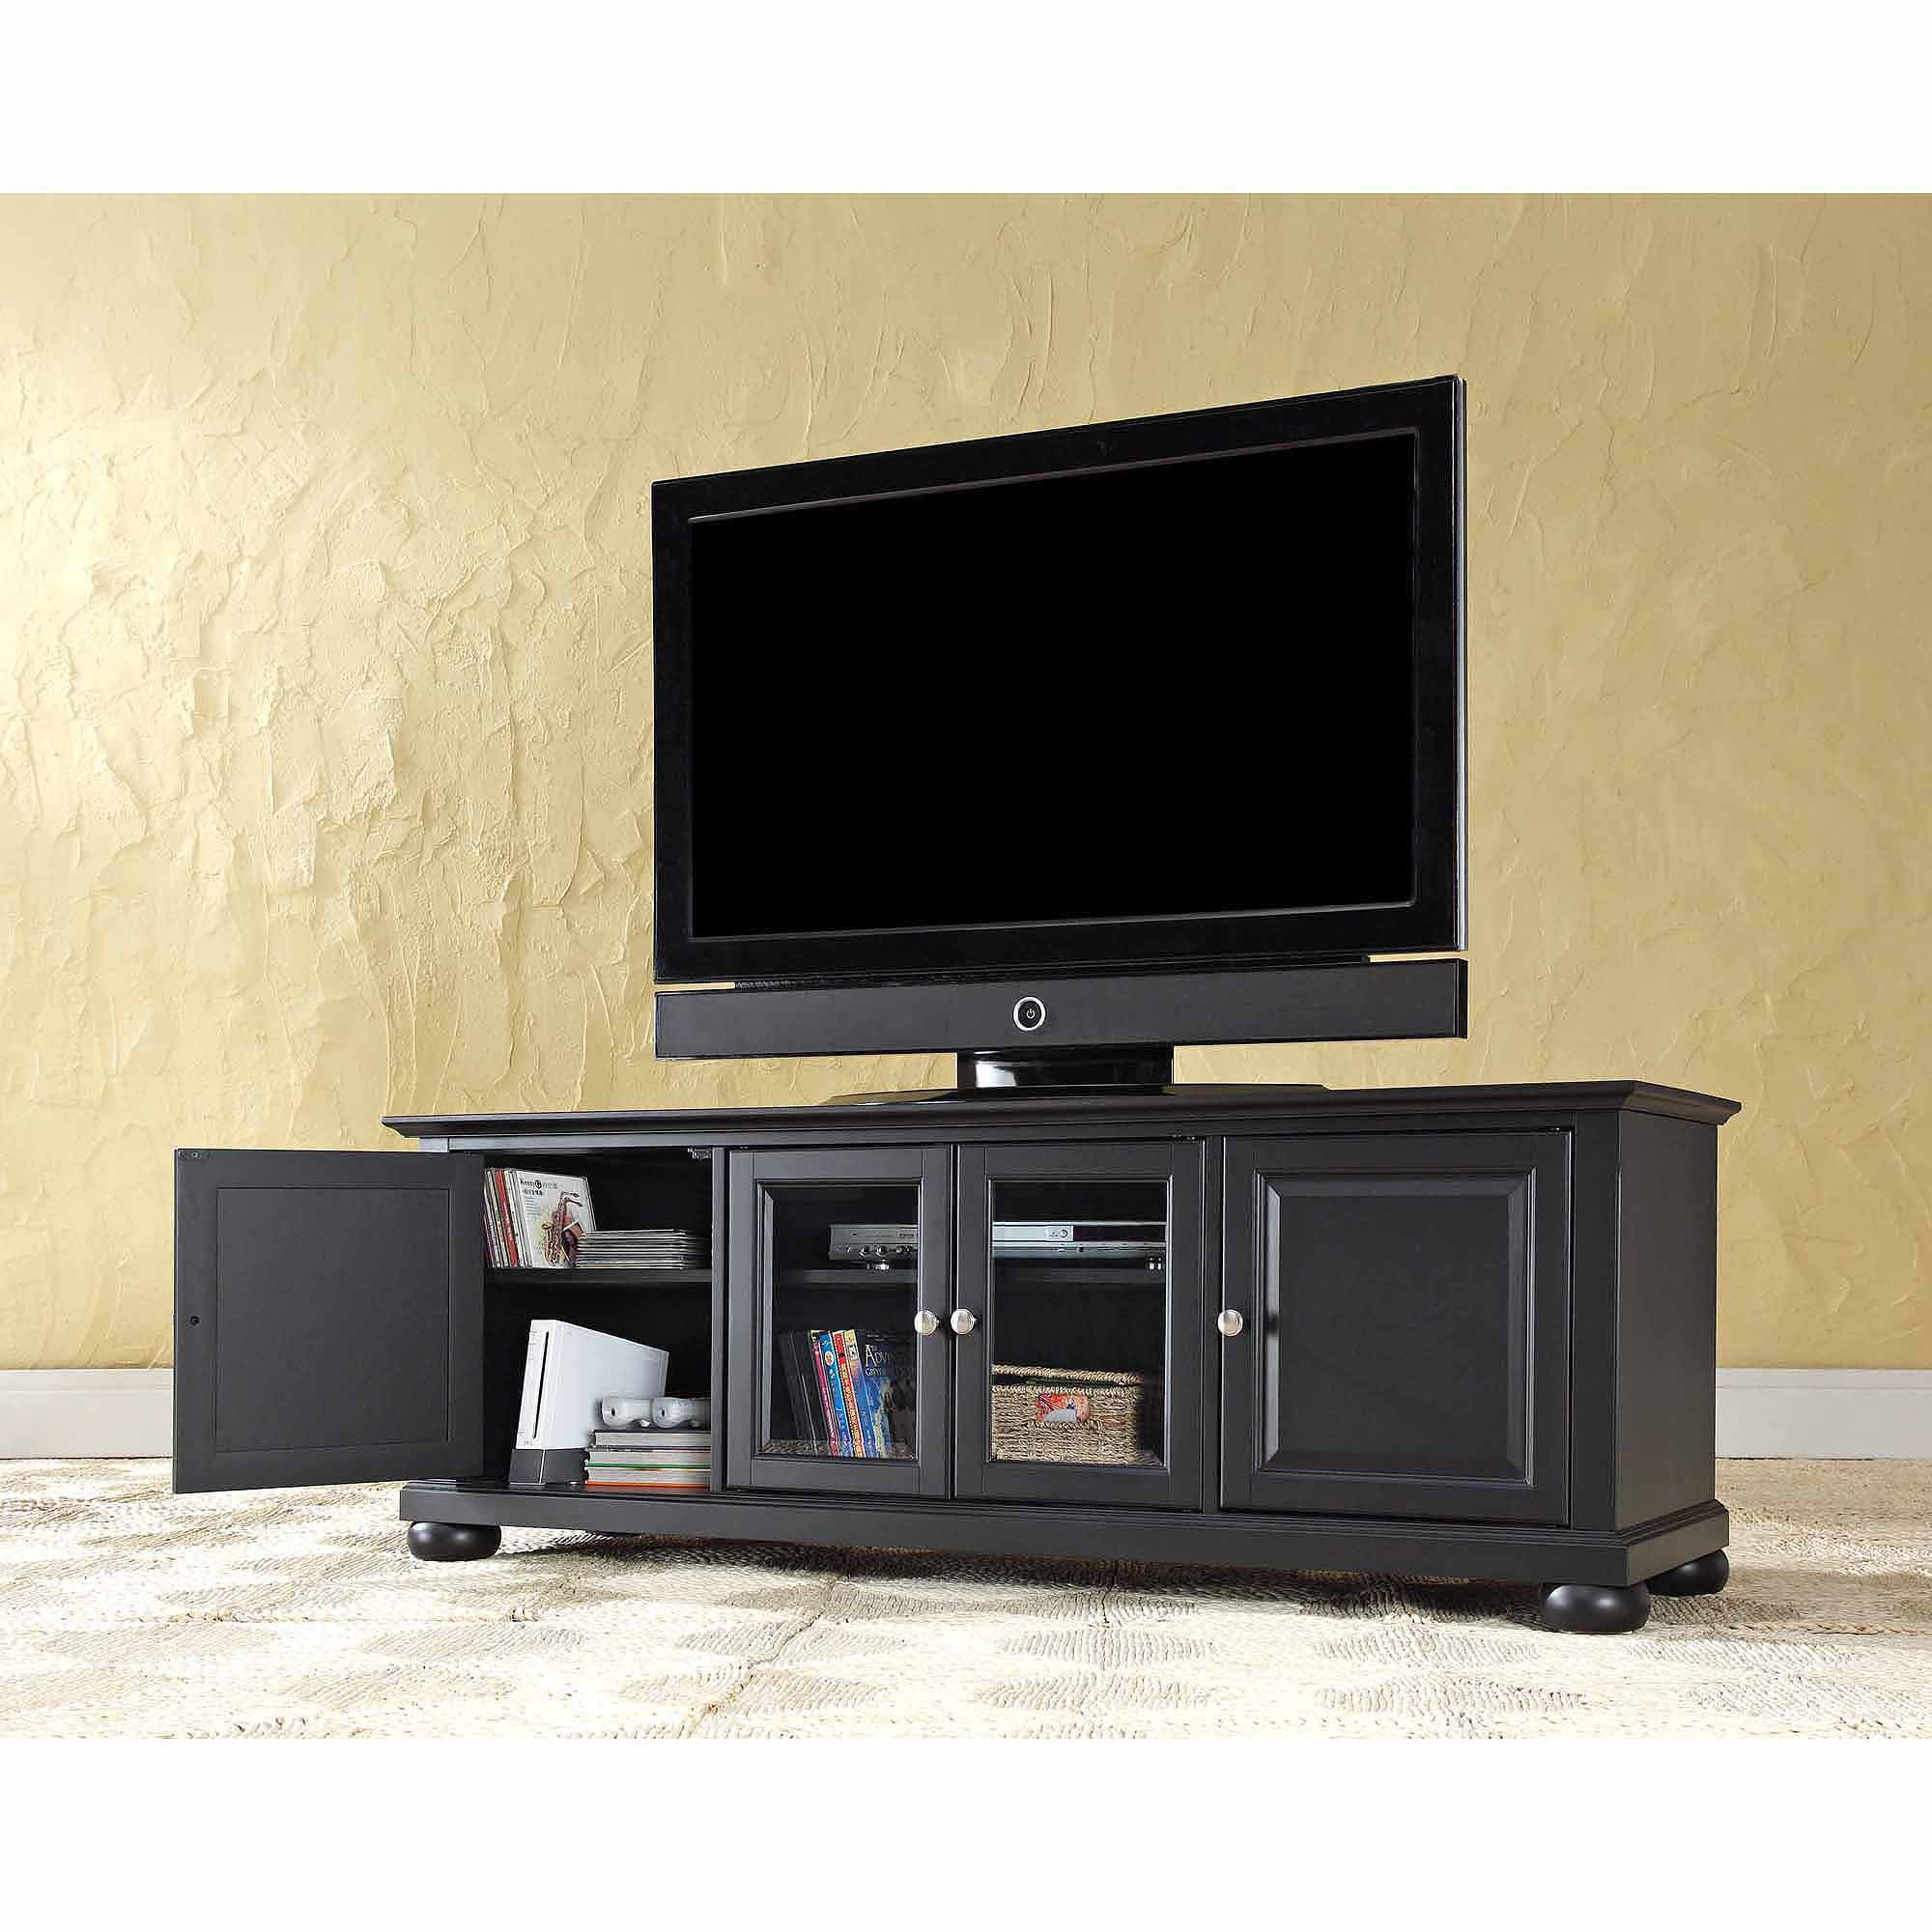 crosley furniture alexandria low profile tv stand for tvs up to  walmartcom. crosley furniture alexandria low profile tv stand for tvs up to